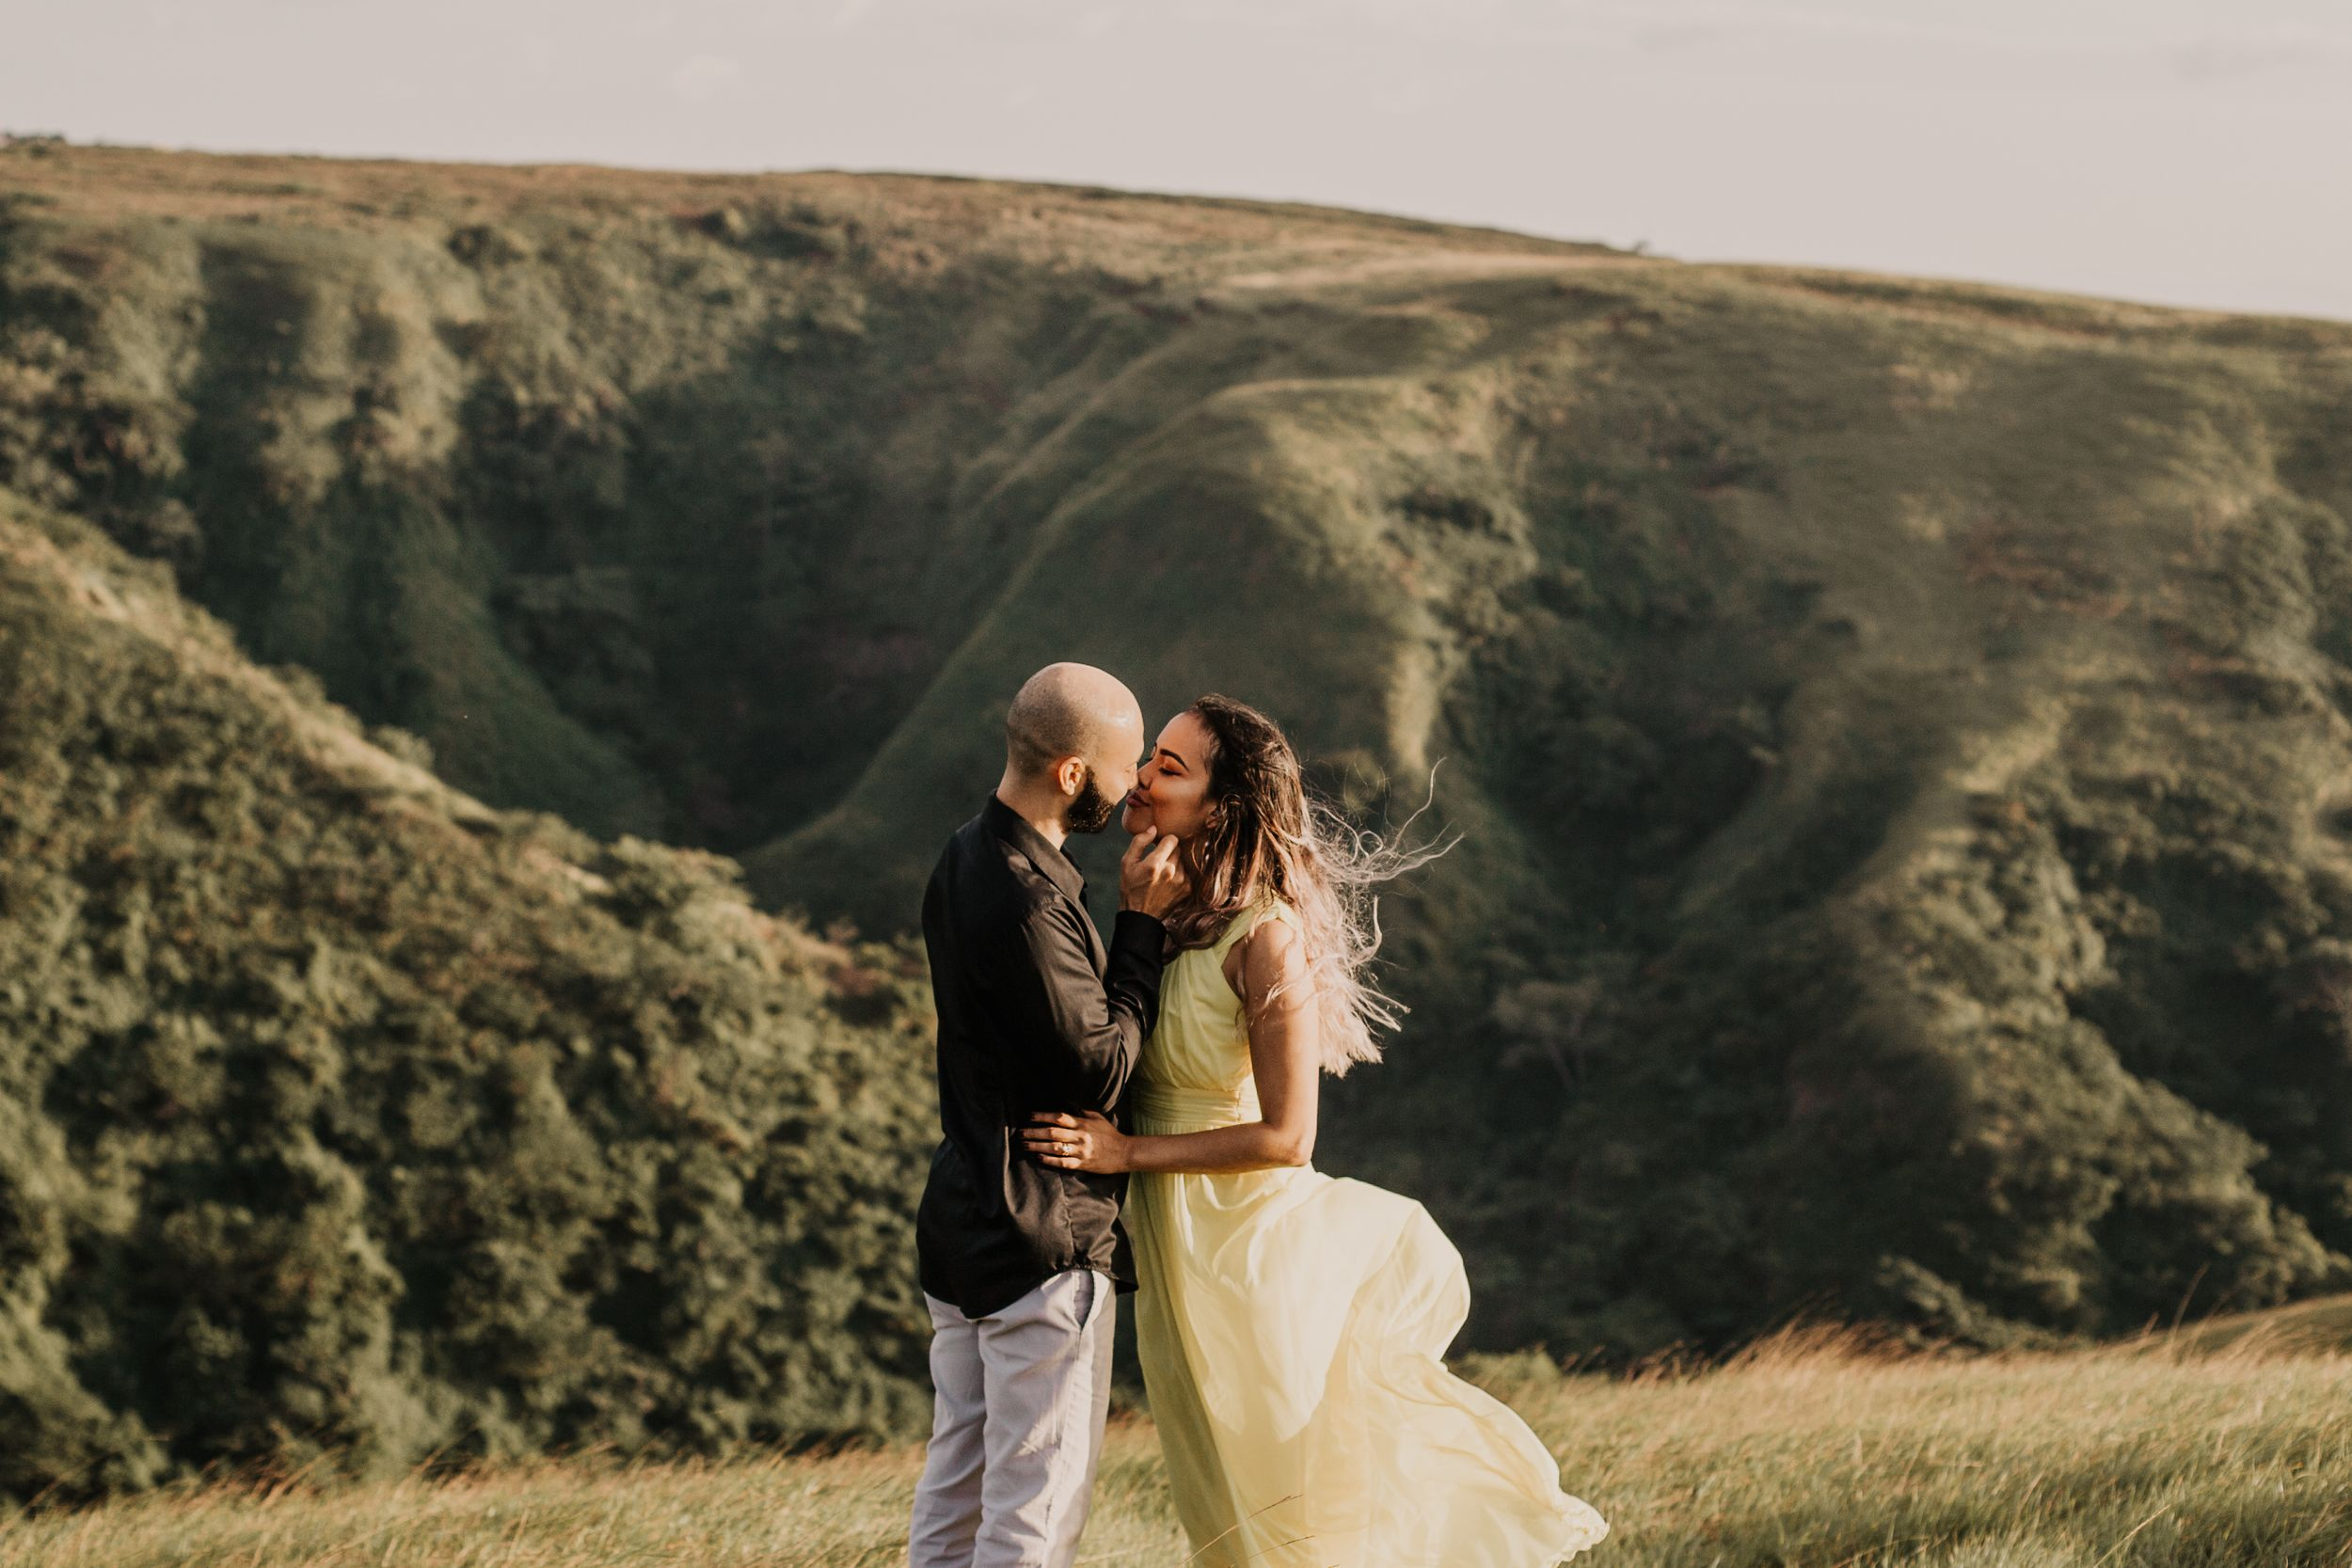 Girls hair blows in the wind as husband goes in to kiss her in front of beautiful view